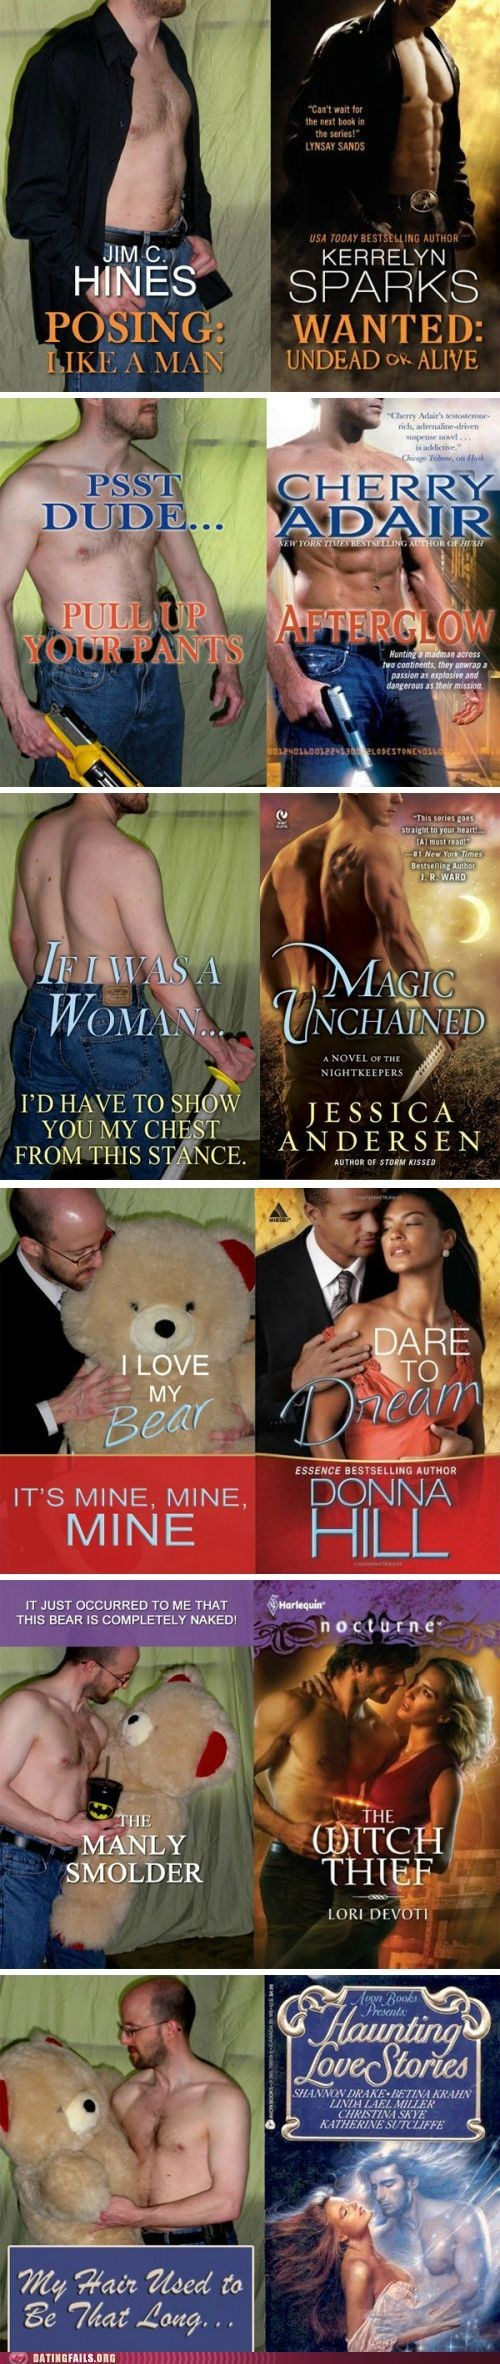 If All Romance Covers Were Like This I'd Read Them 100% More Often